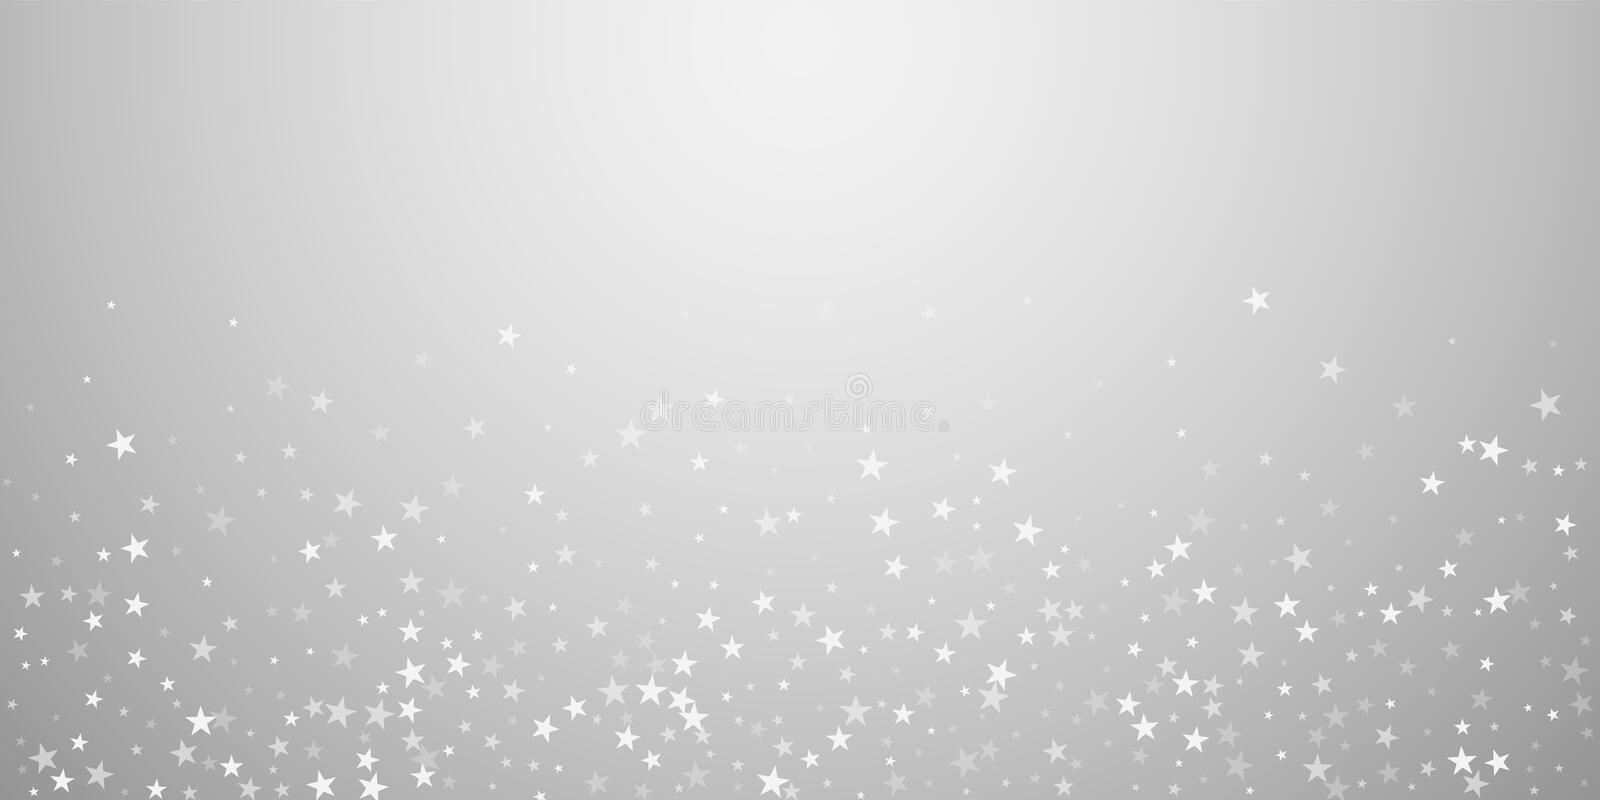 Random falling stars Christmas background. Subtle. Flying snow flakes and stars on light grey background. Beautiful winter silver snowflake overlay template royalty free illustration